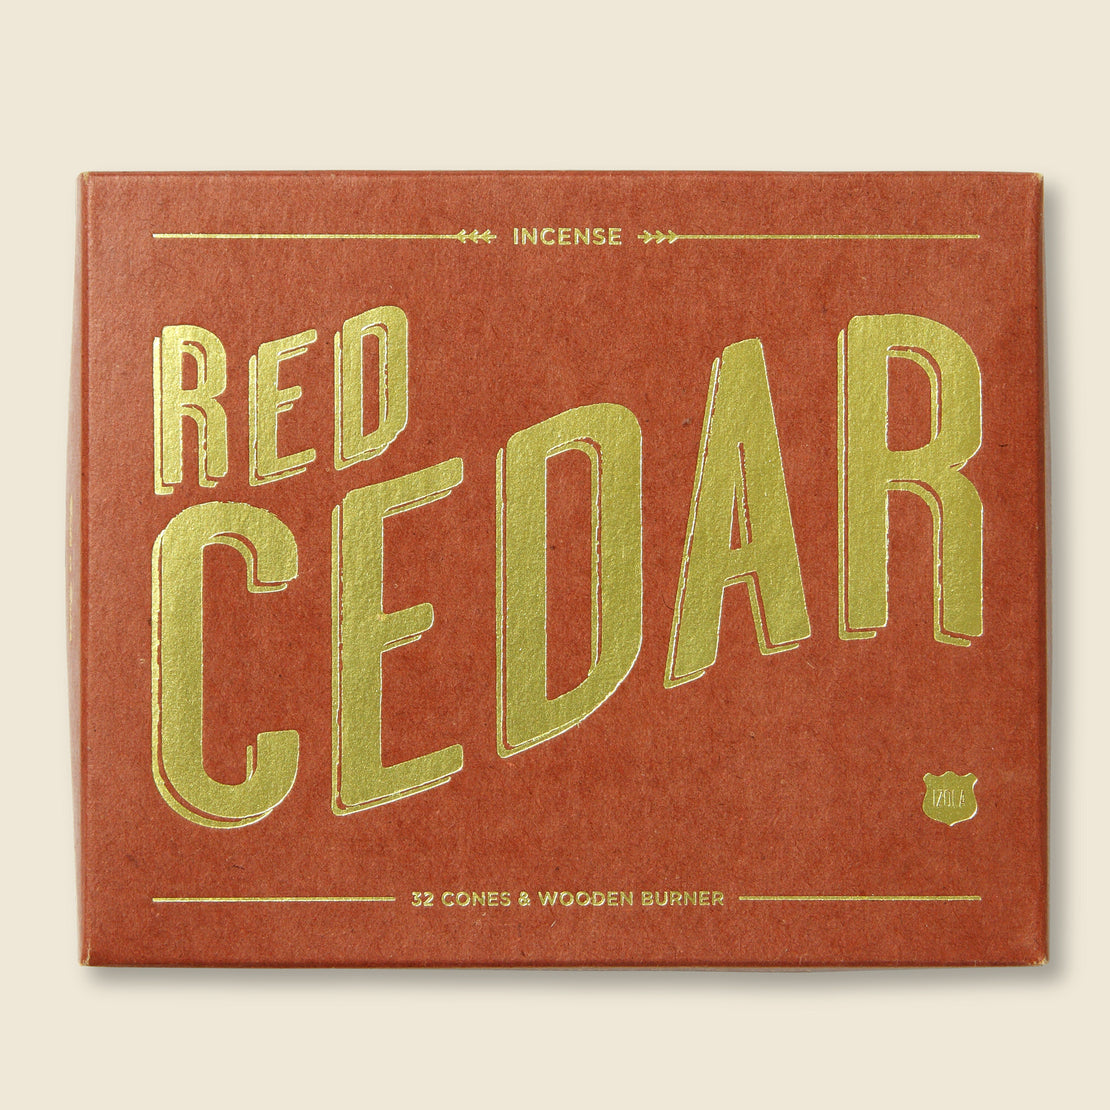 Incense - Red Cedar - Izola - STAG Provisions - Gift - Incense